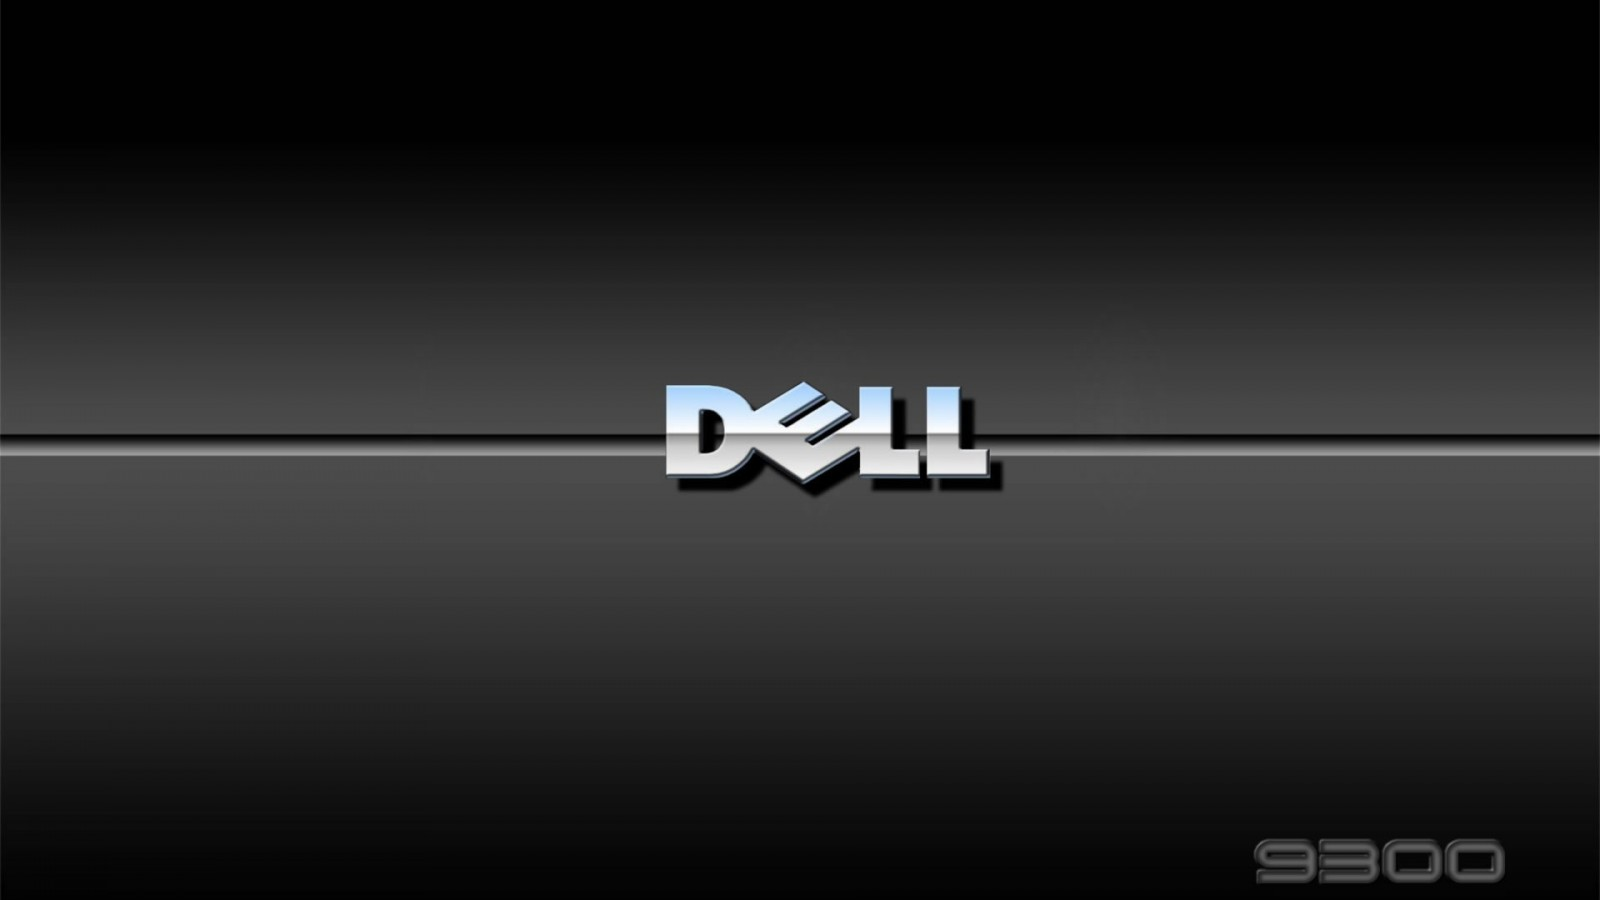 HD Dell Backgrounds Dell Wallpaper Images For Windows 1600x900